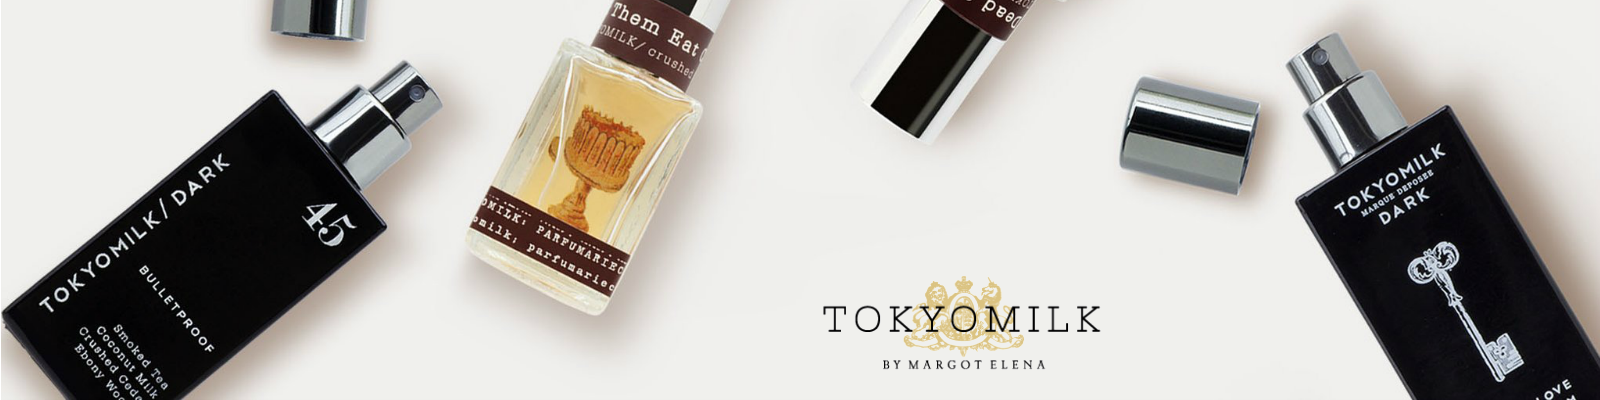 TokyoMilk available at Sportique